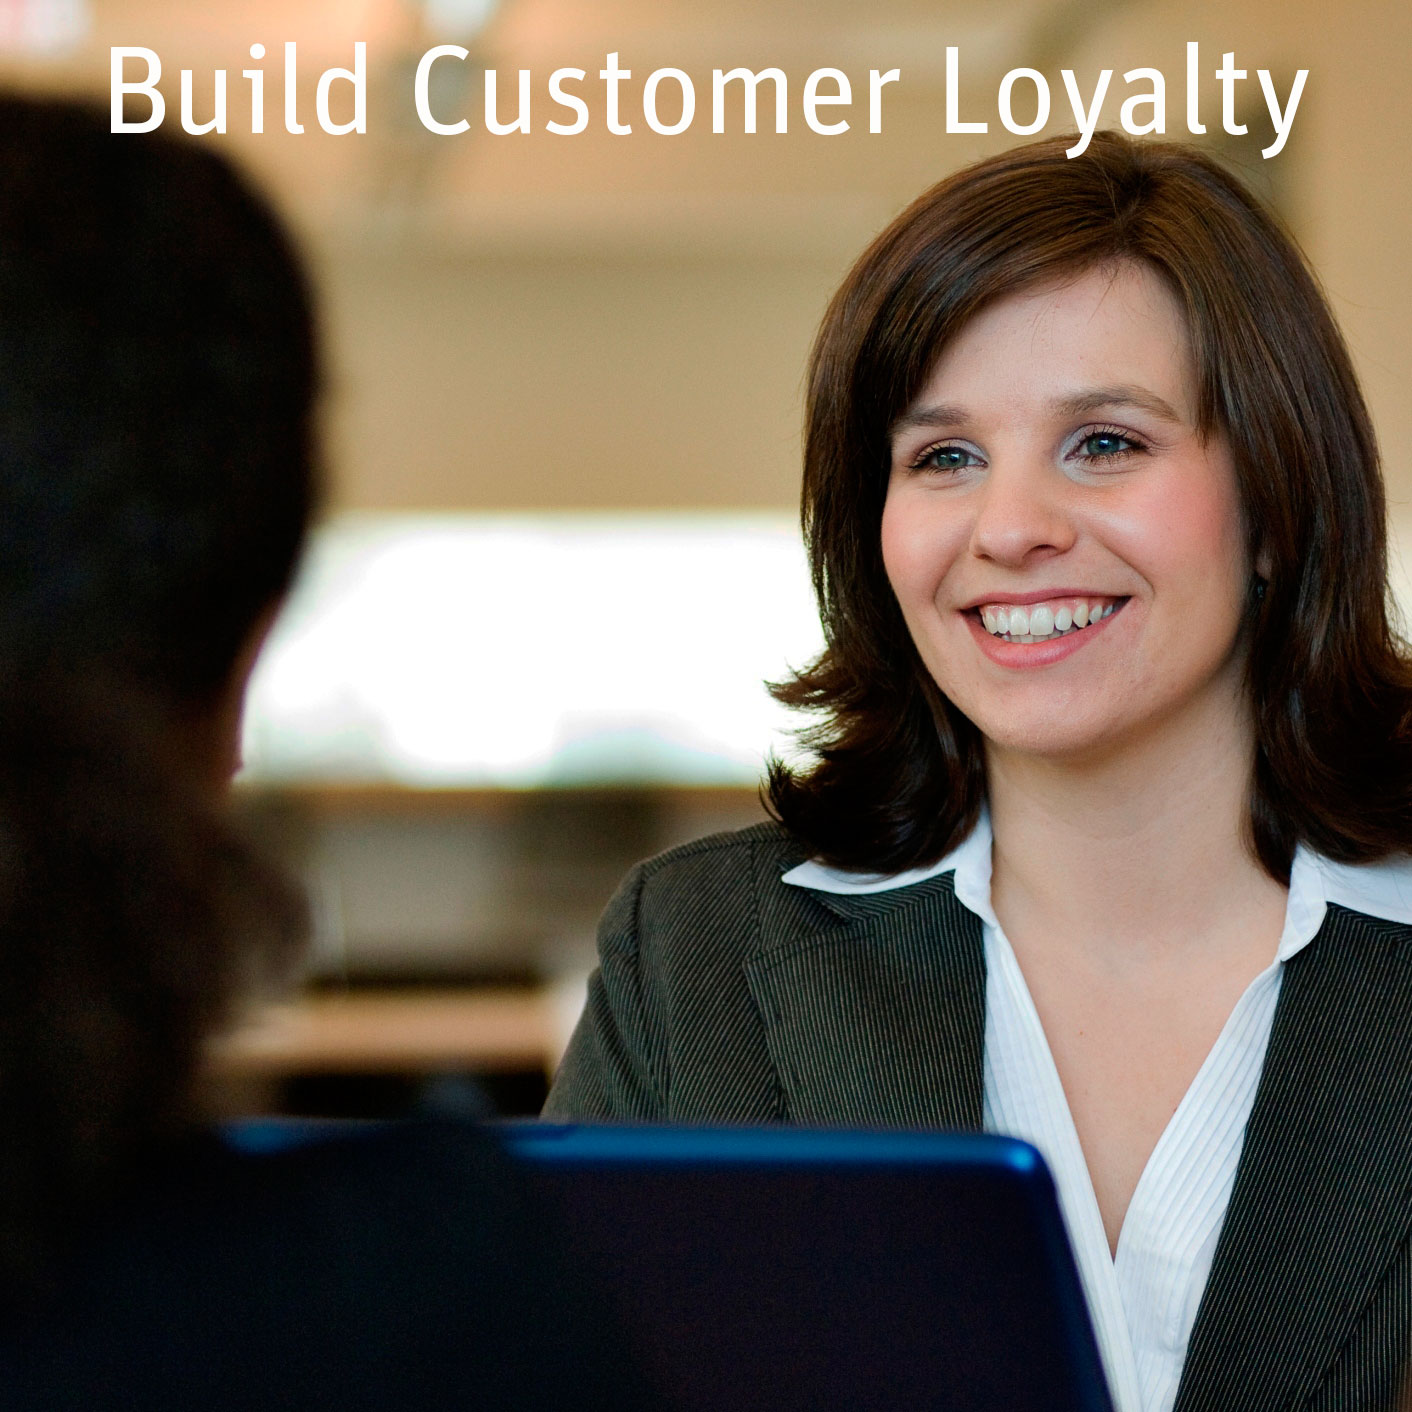 Build-Customer-Loyalty.jpg